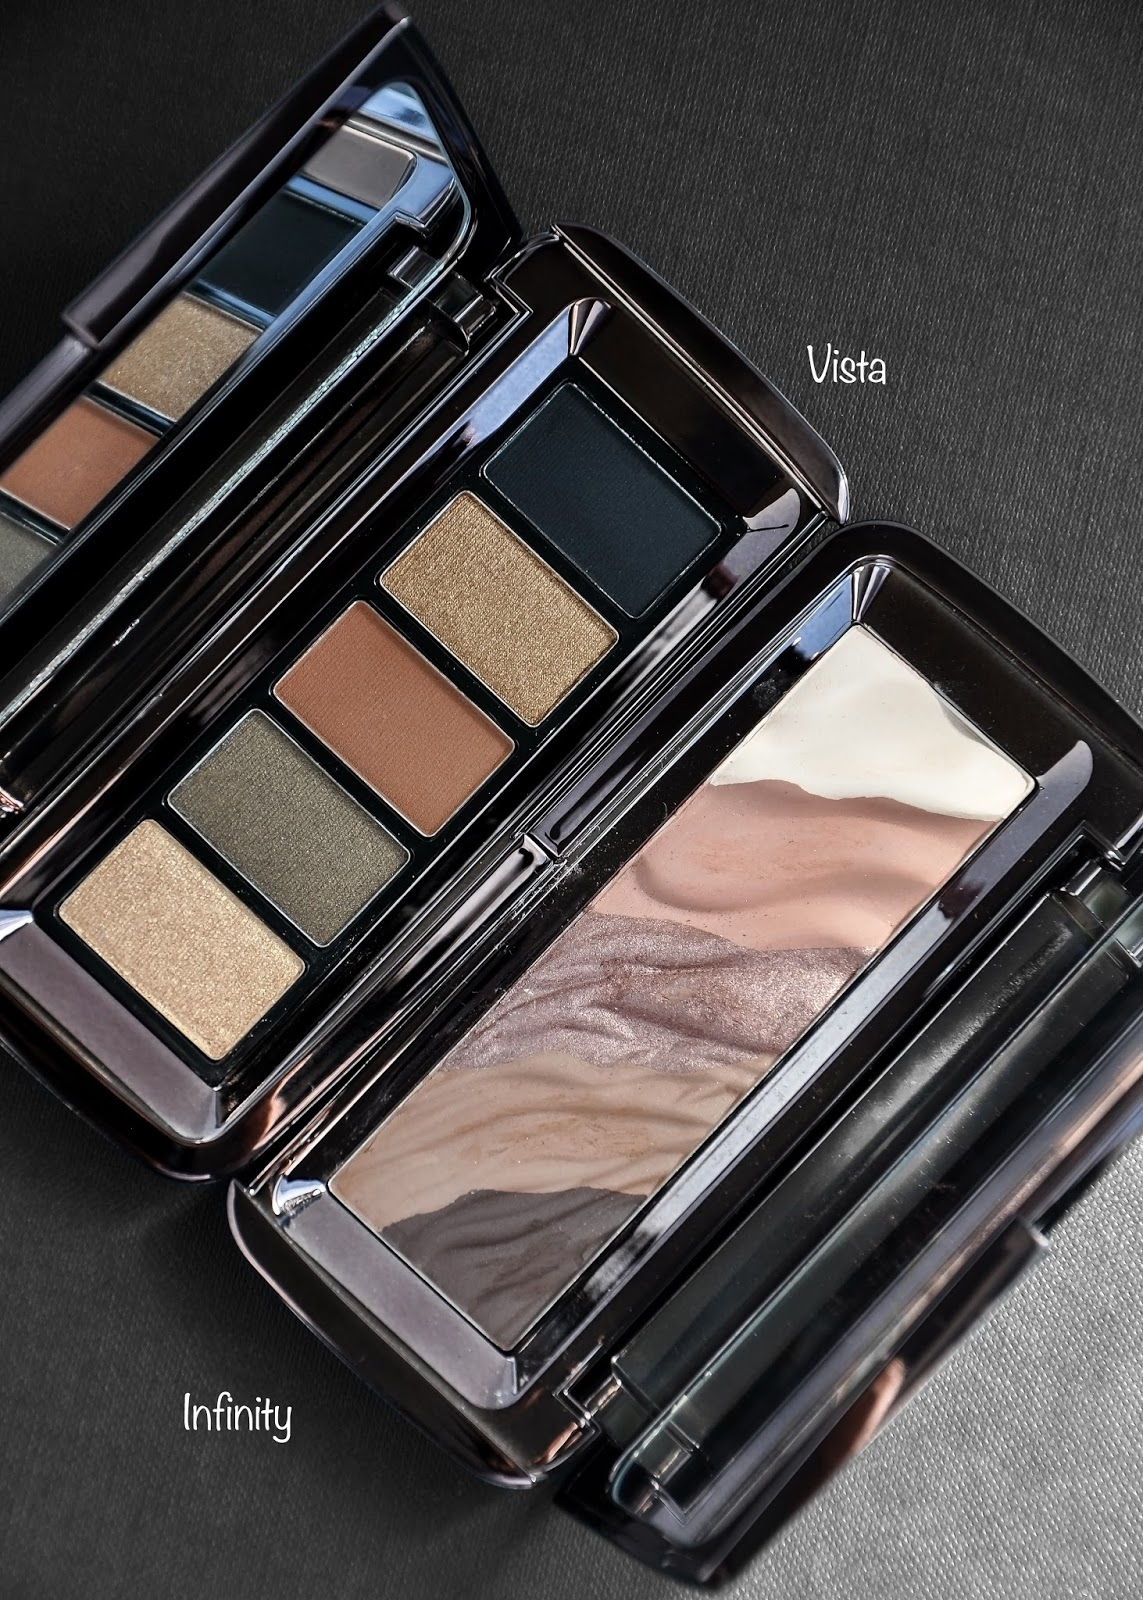 Hourglass Cosmetics Vista Graphik Eyeshadow Palette review and swatches